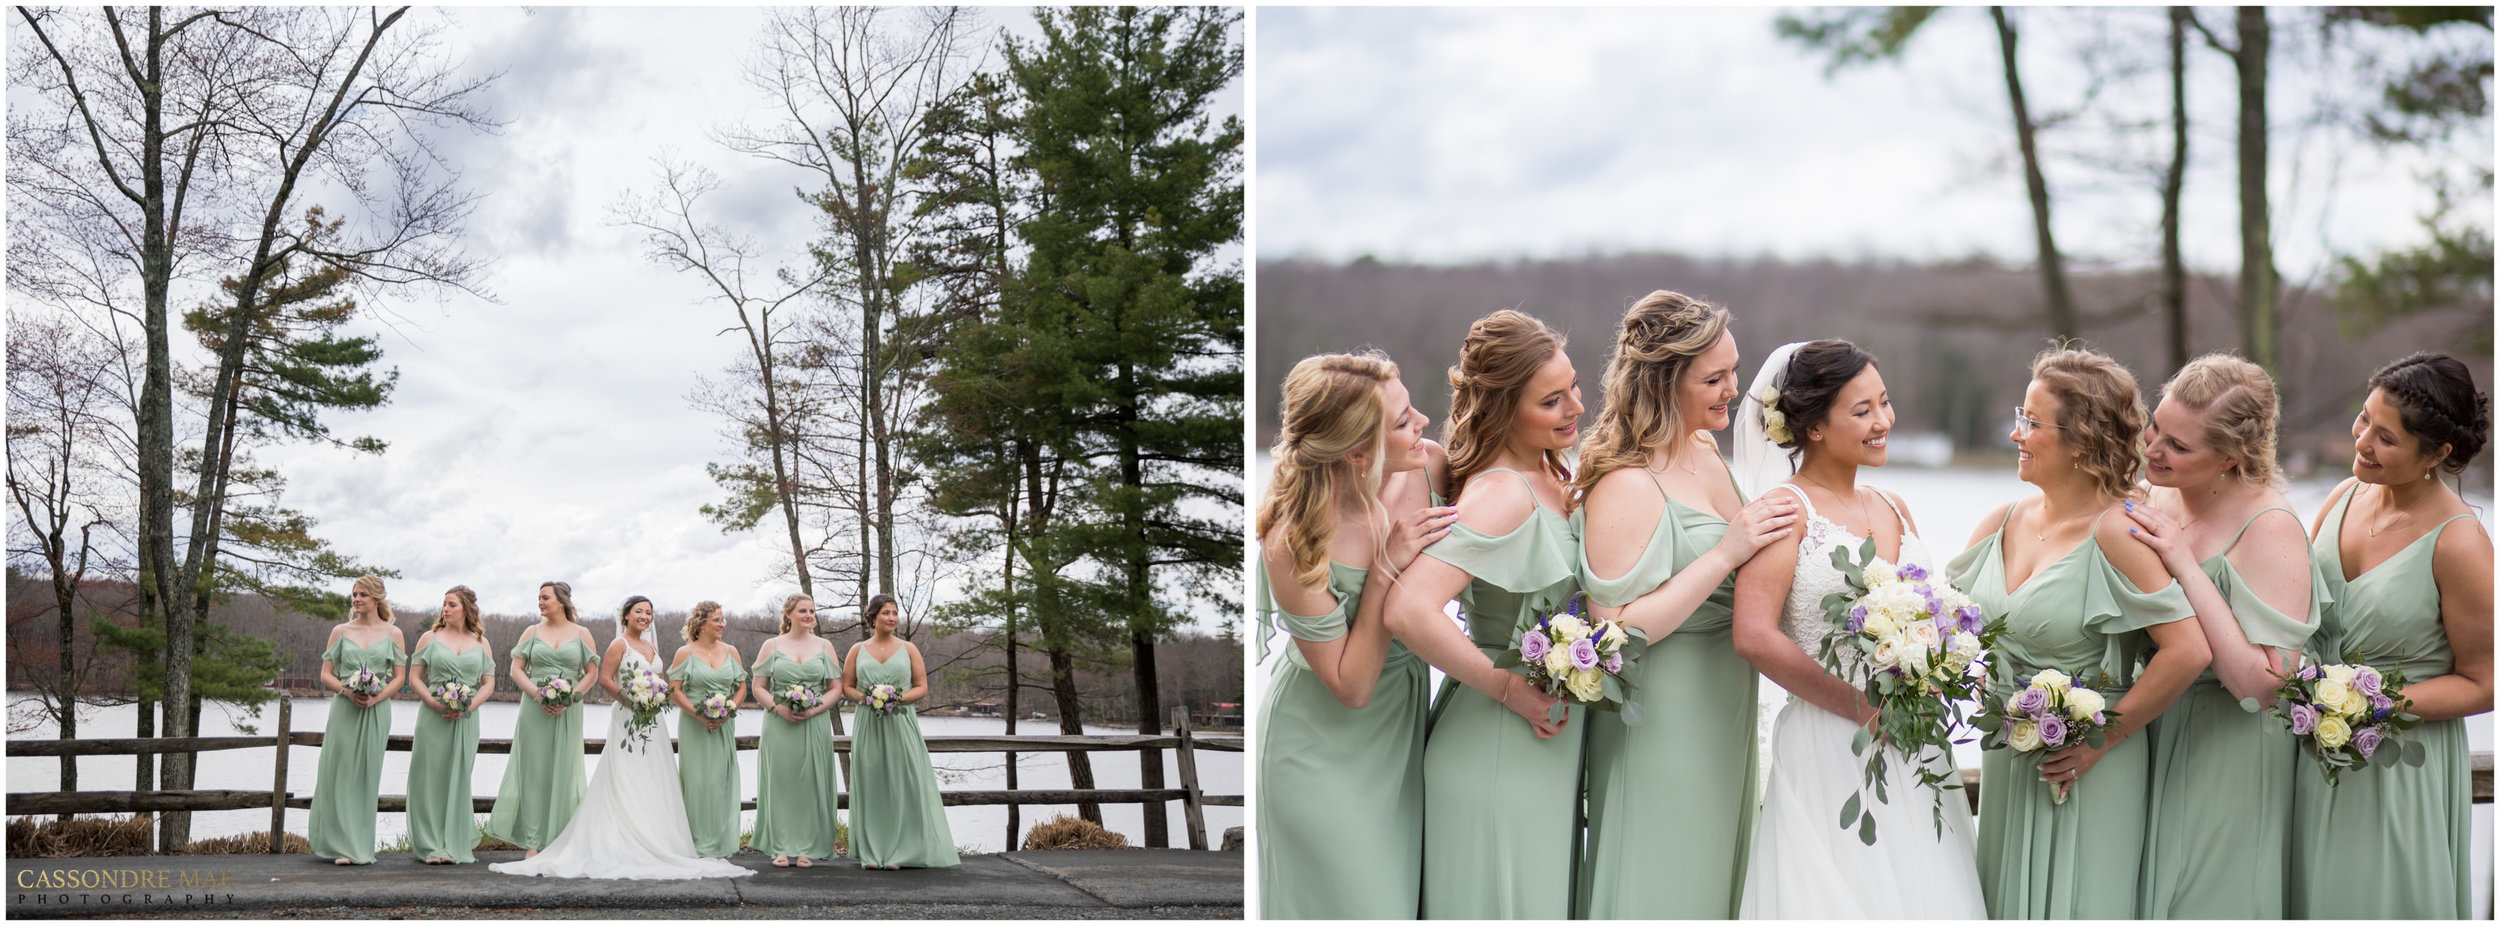 Cassondre Mae Photography Woodloch Resort Wedding 24.jpg